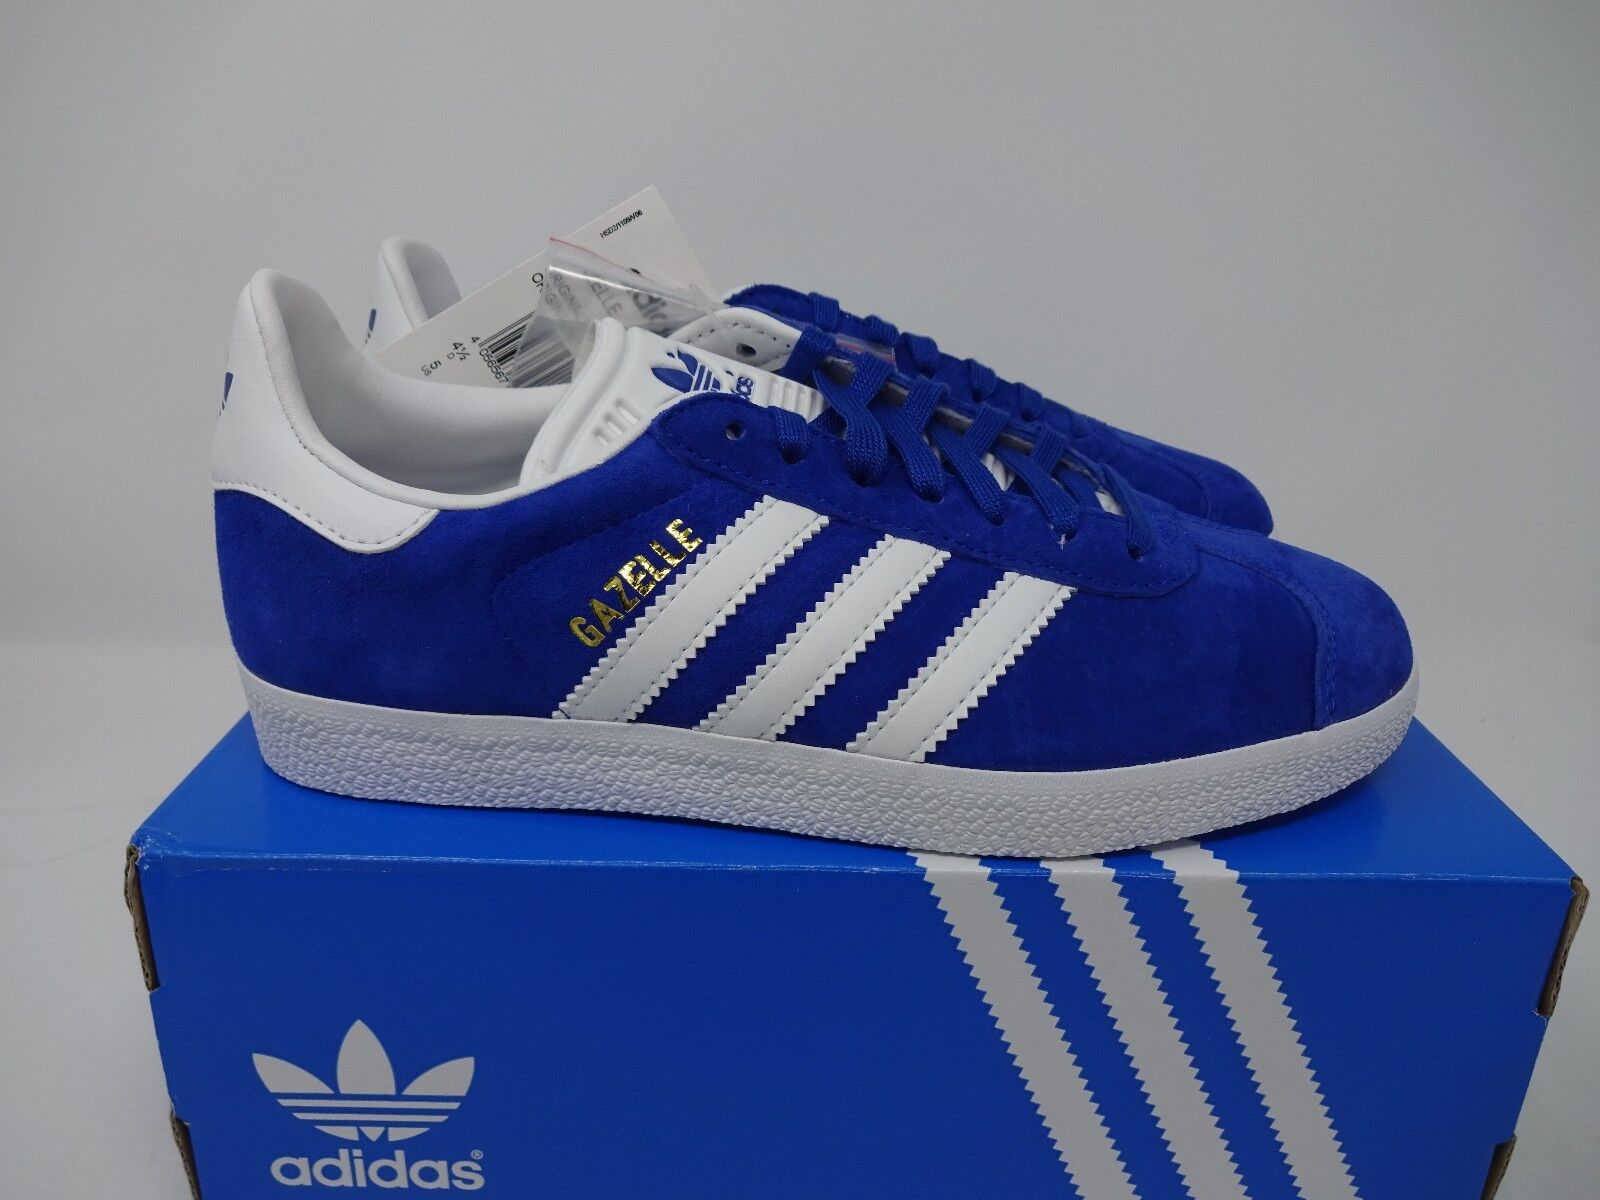 super popular 2e0fa 347ee ADIDAS GAZELLE TRAINERS - ROYAL Blau Weiß BNIB S76227 UK 4 + 4.5 + 5.5  S76227 BNIB 49a45e